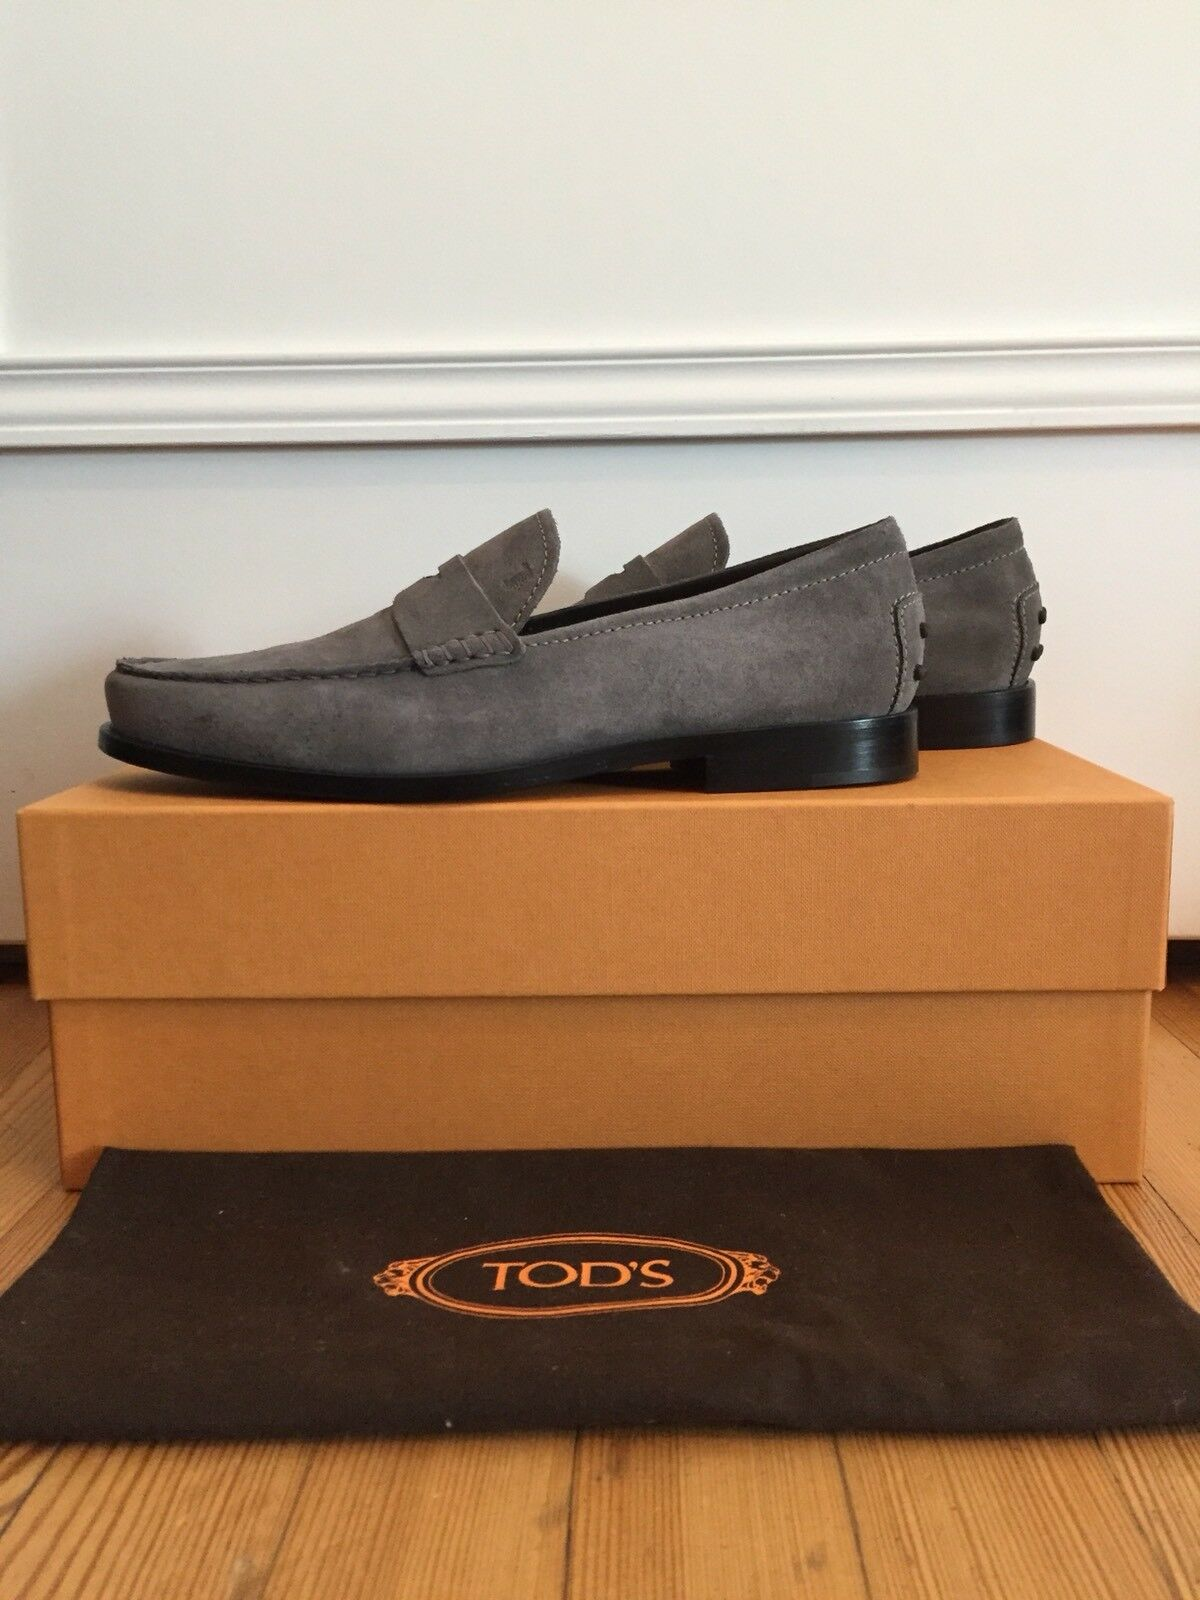 Slipper 41 di TODS Nuovo!€ Nuovo!€ TODS 455,- c5cec6